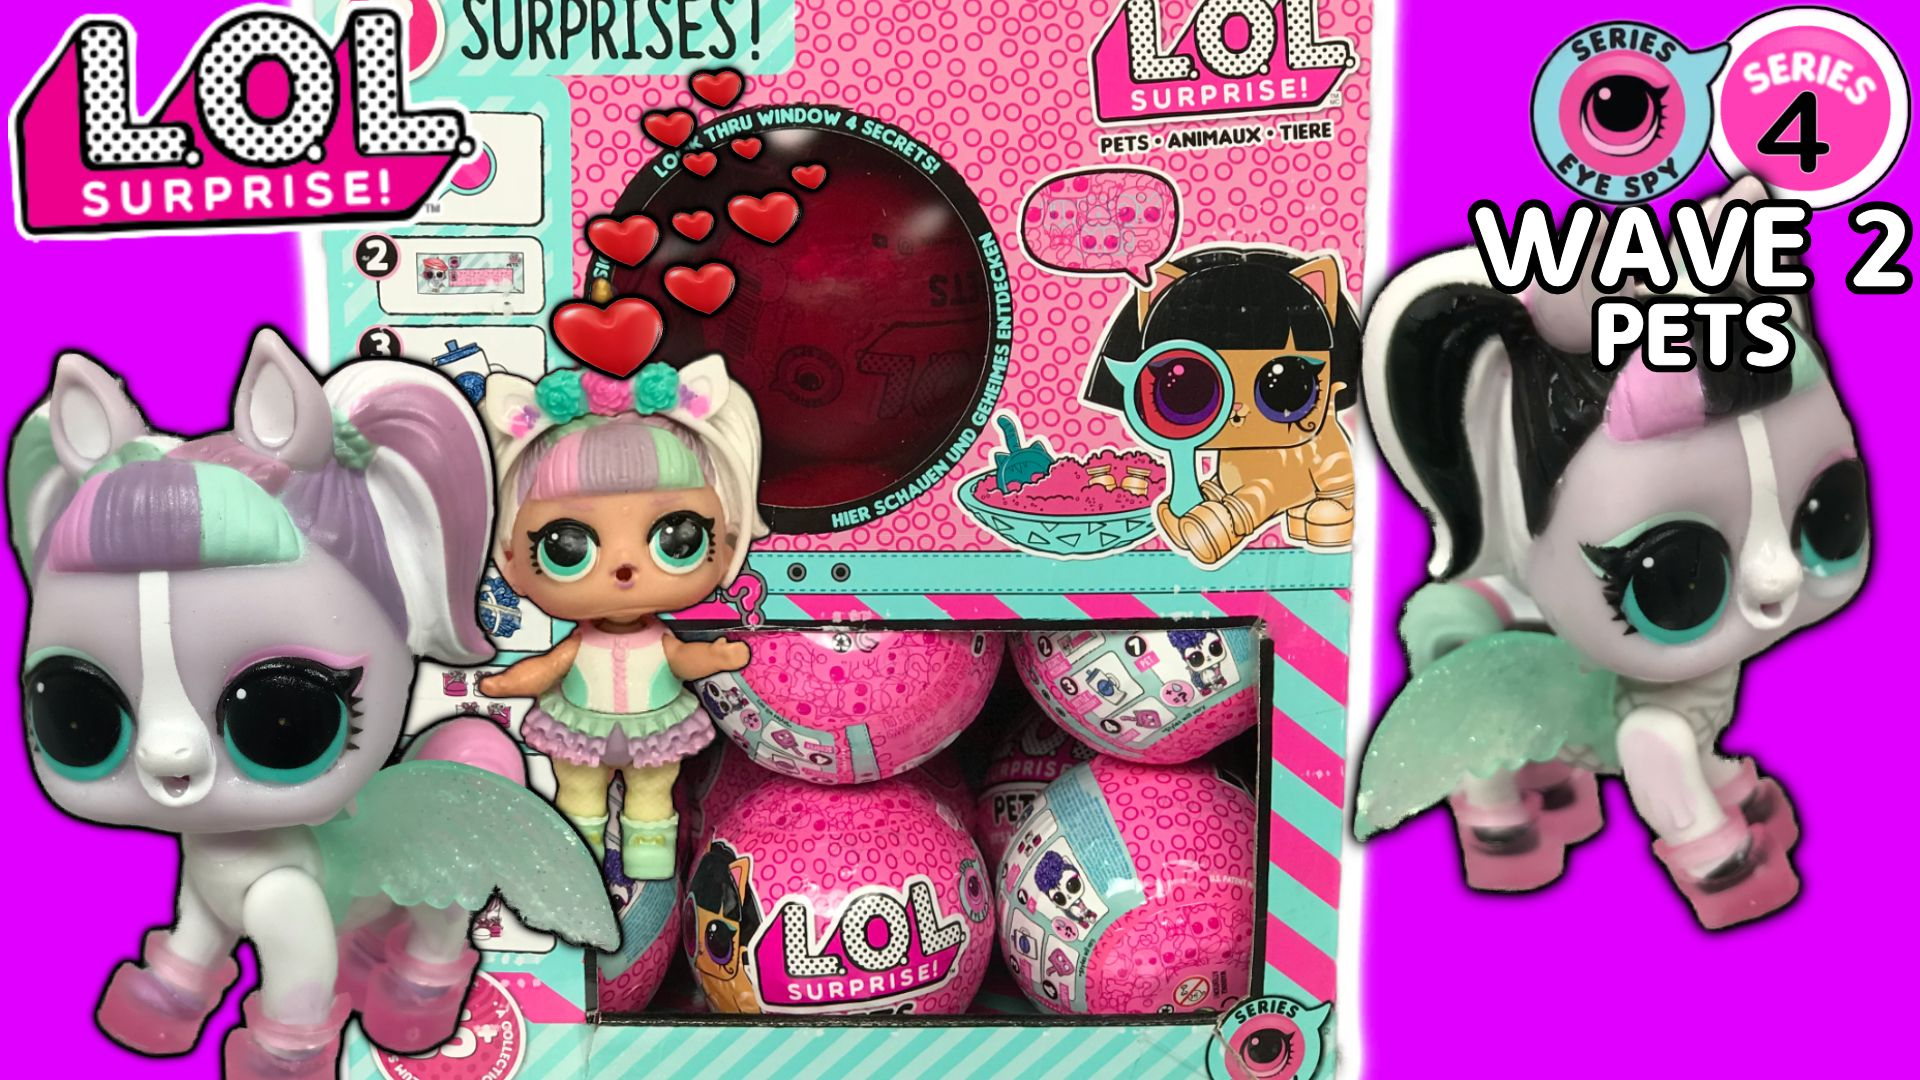 Lol Surprise Series 4 Wave 2 Pets Are Here We Are Unboxing A Full Case Of The Series 4 Wave 2 Lol Pets Today We Lol Dolls Unicorn Stuffed Animal Doll Videos